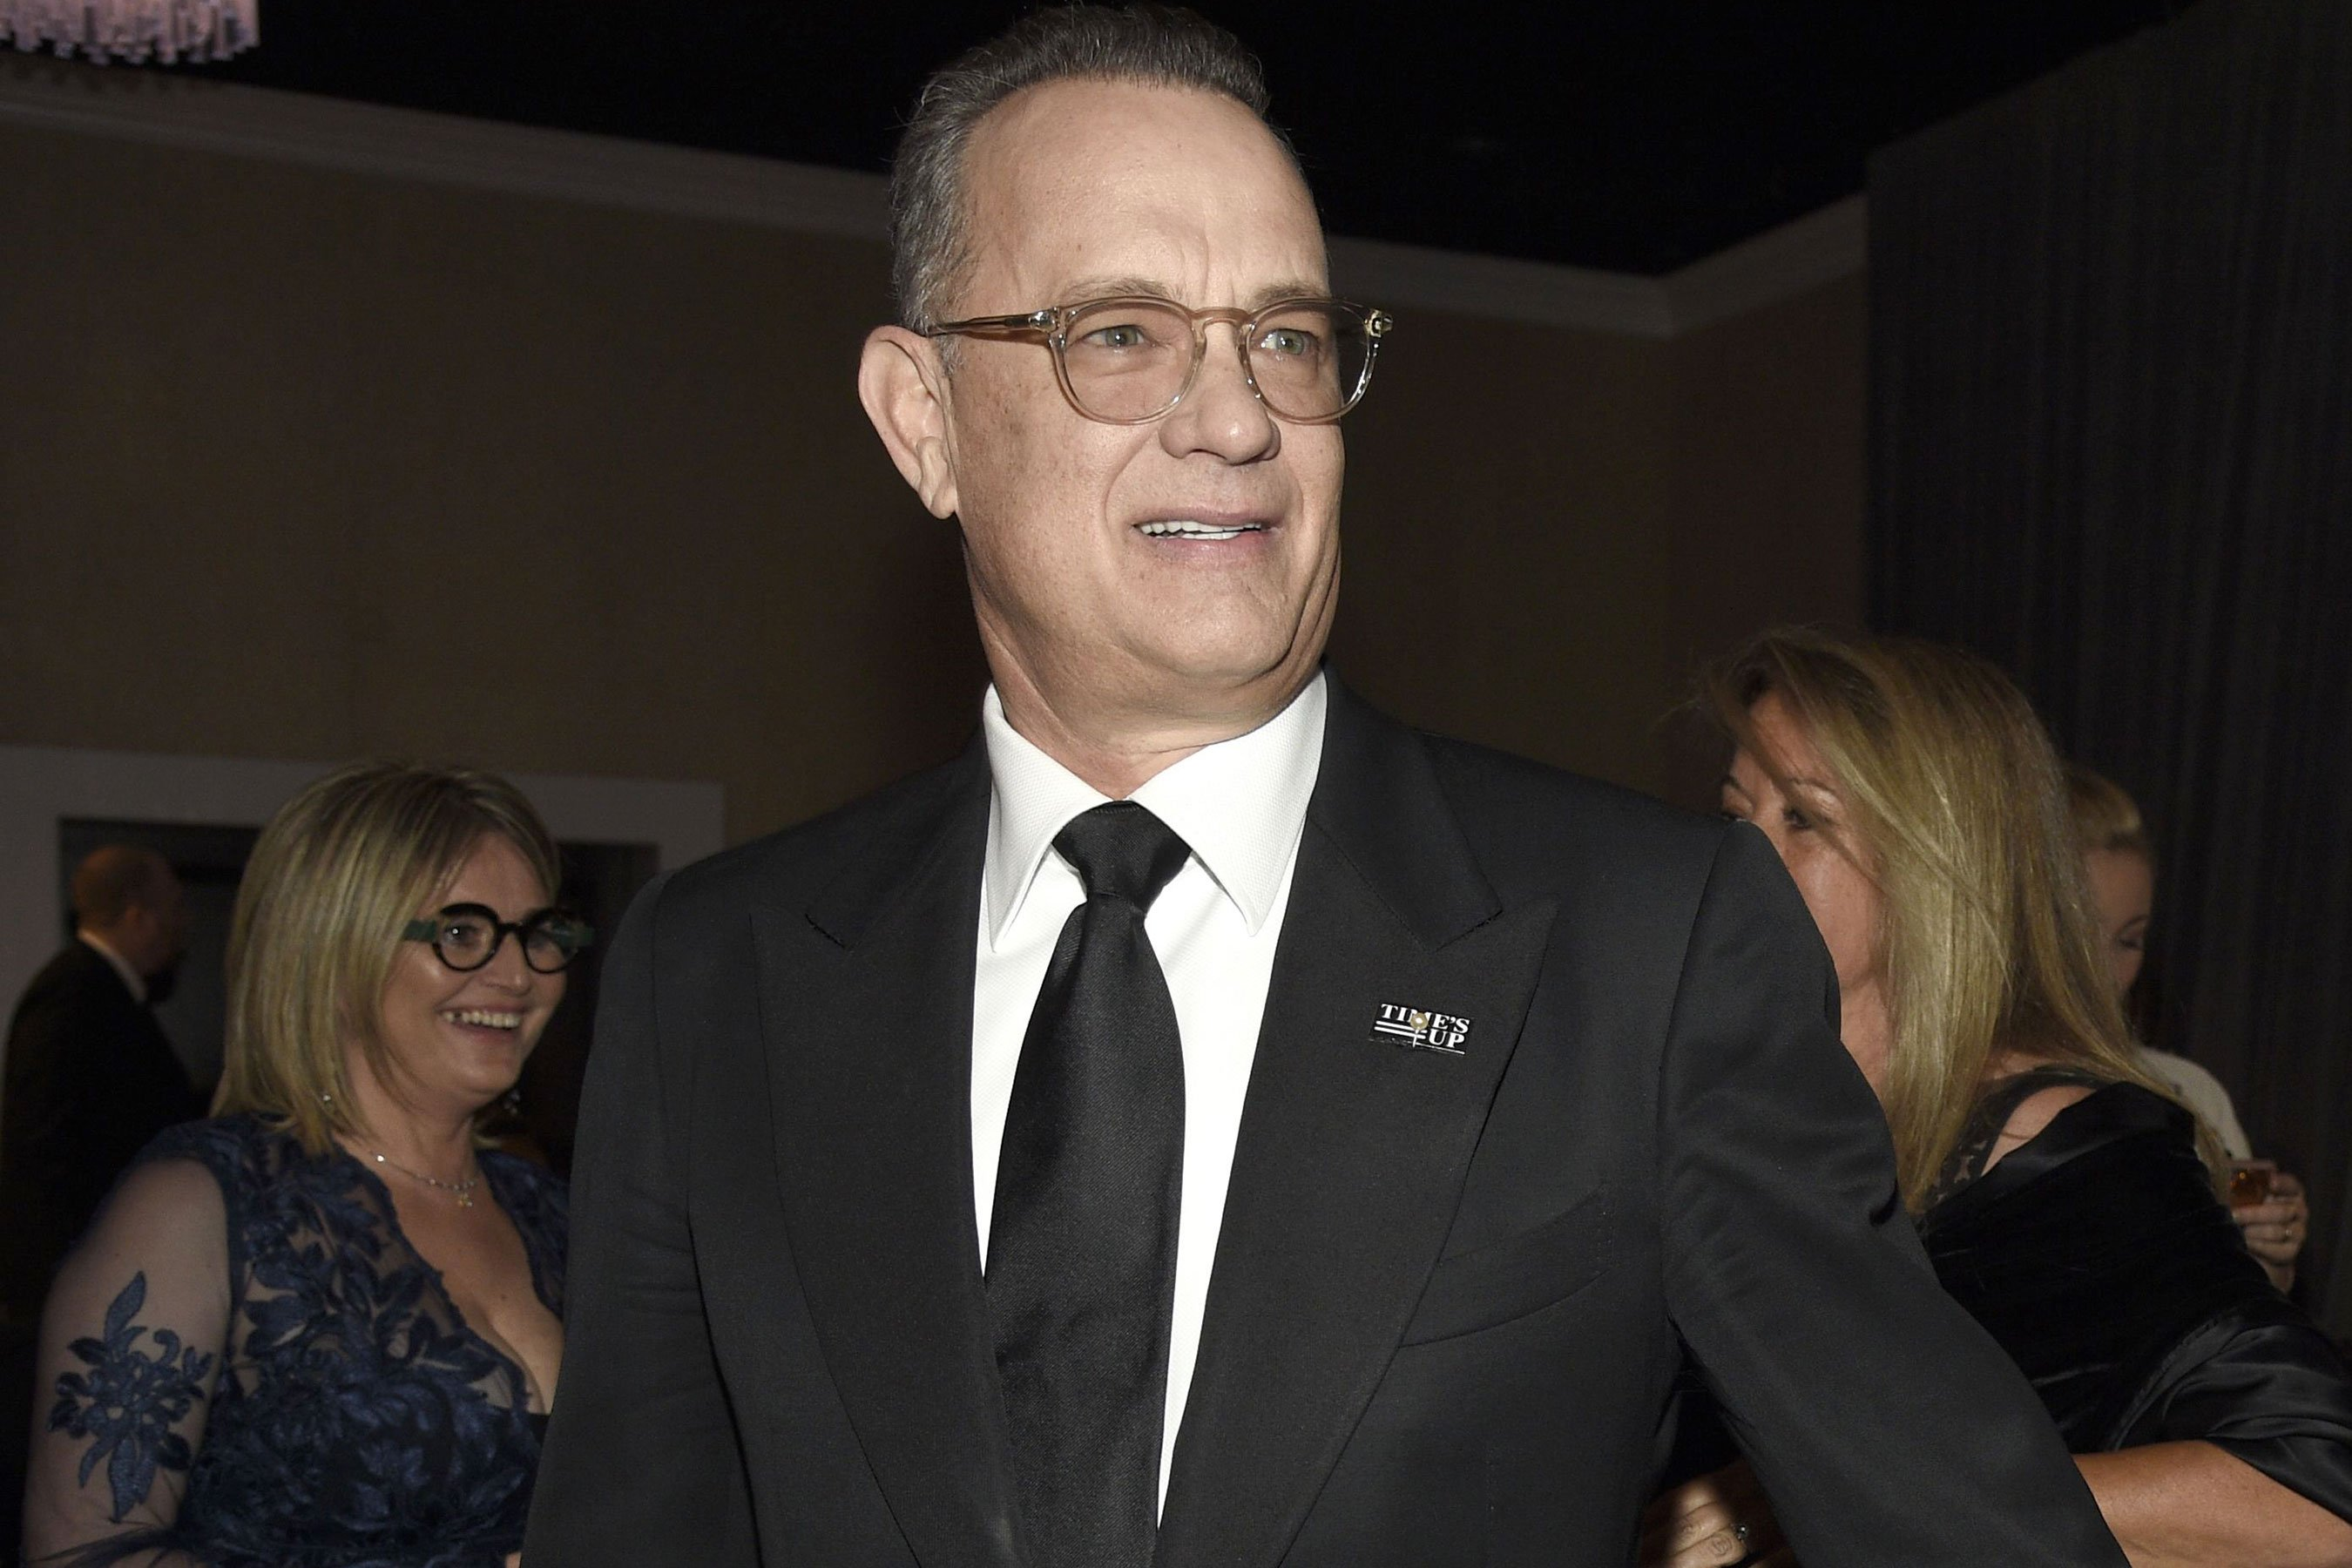 Golden Globes: Tom Hanks martini tray photo is priceless